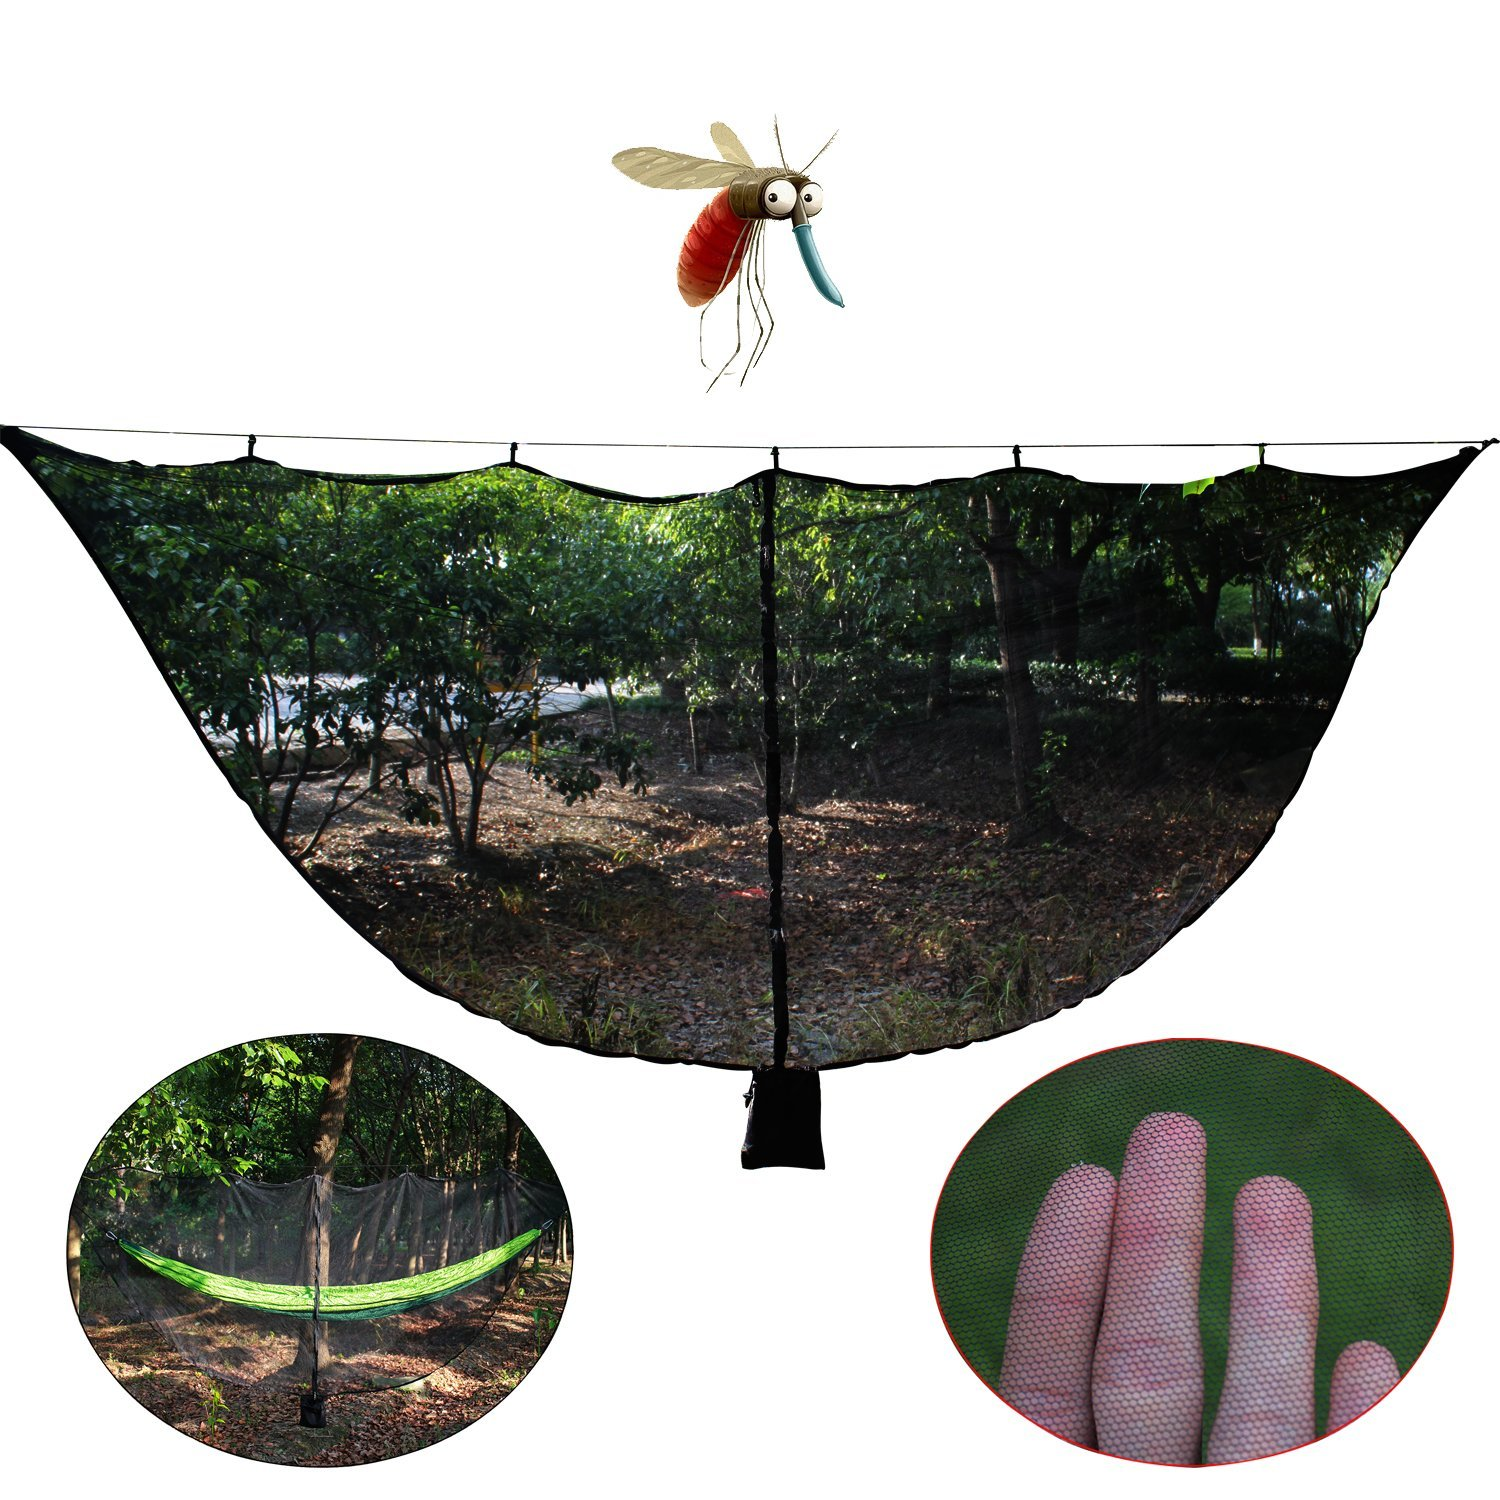 OUTDOOR SKY 11' Hammock Bug Net Stops Mosquito - No See Ums & Repels Insects, Exclusive Polyester Mesh for 360° Protection Fits ALL Camping Hammocks - Lightweight, Fast Easy Setup - 130'' x 59'' (Black)